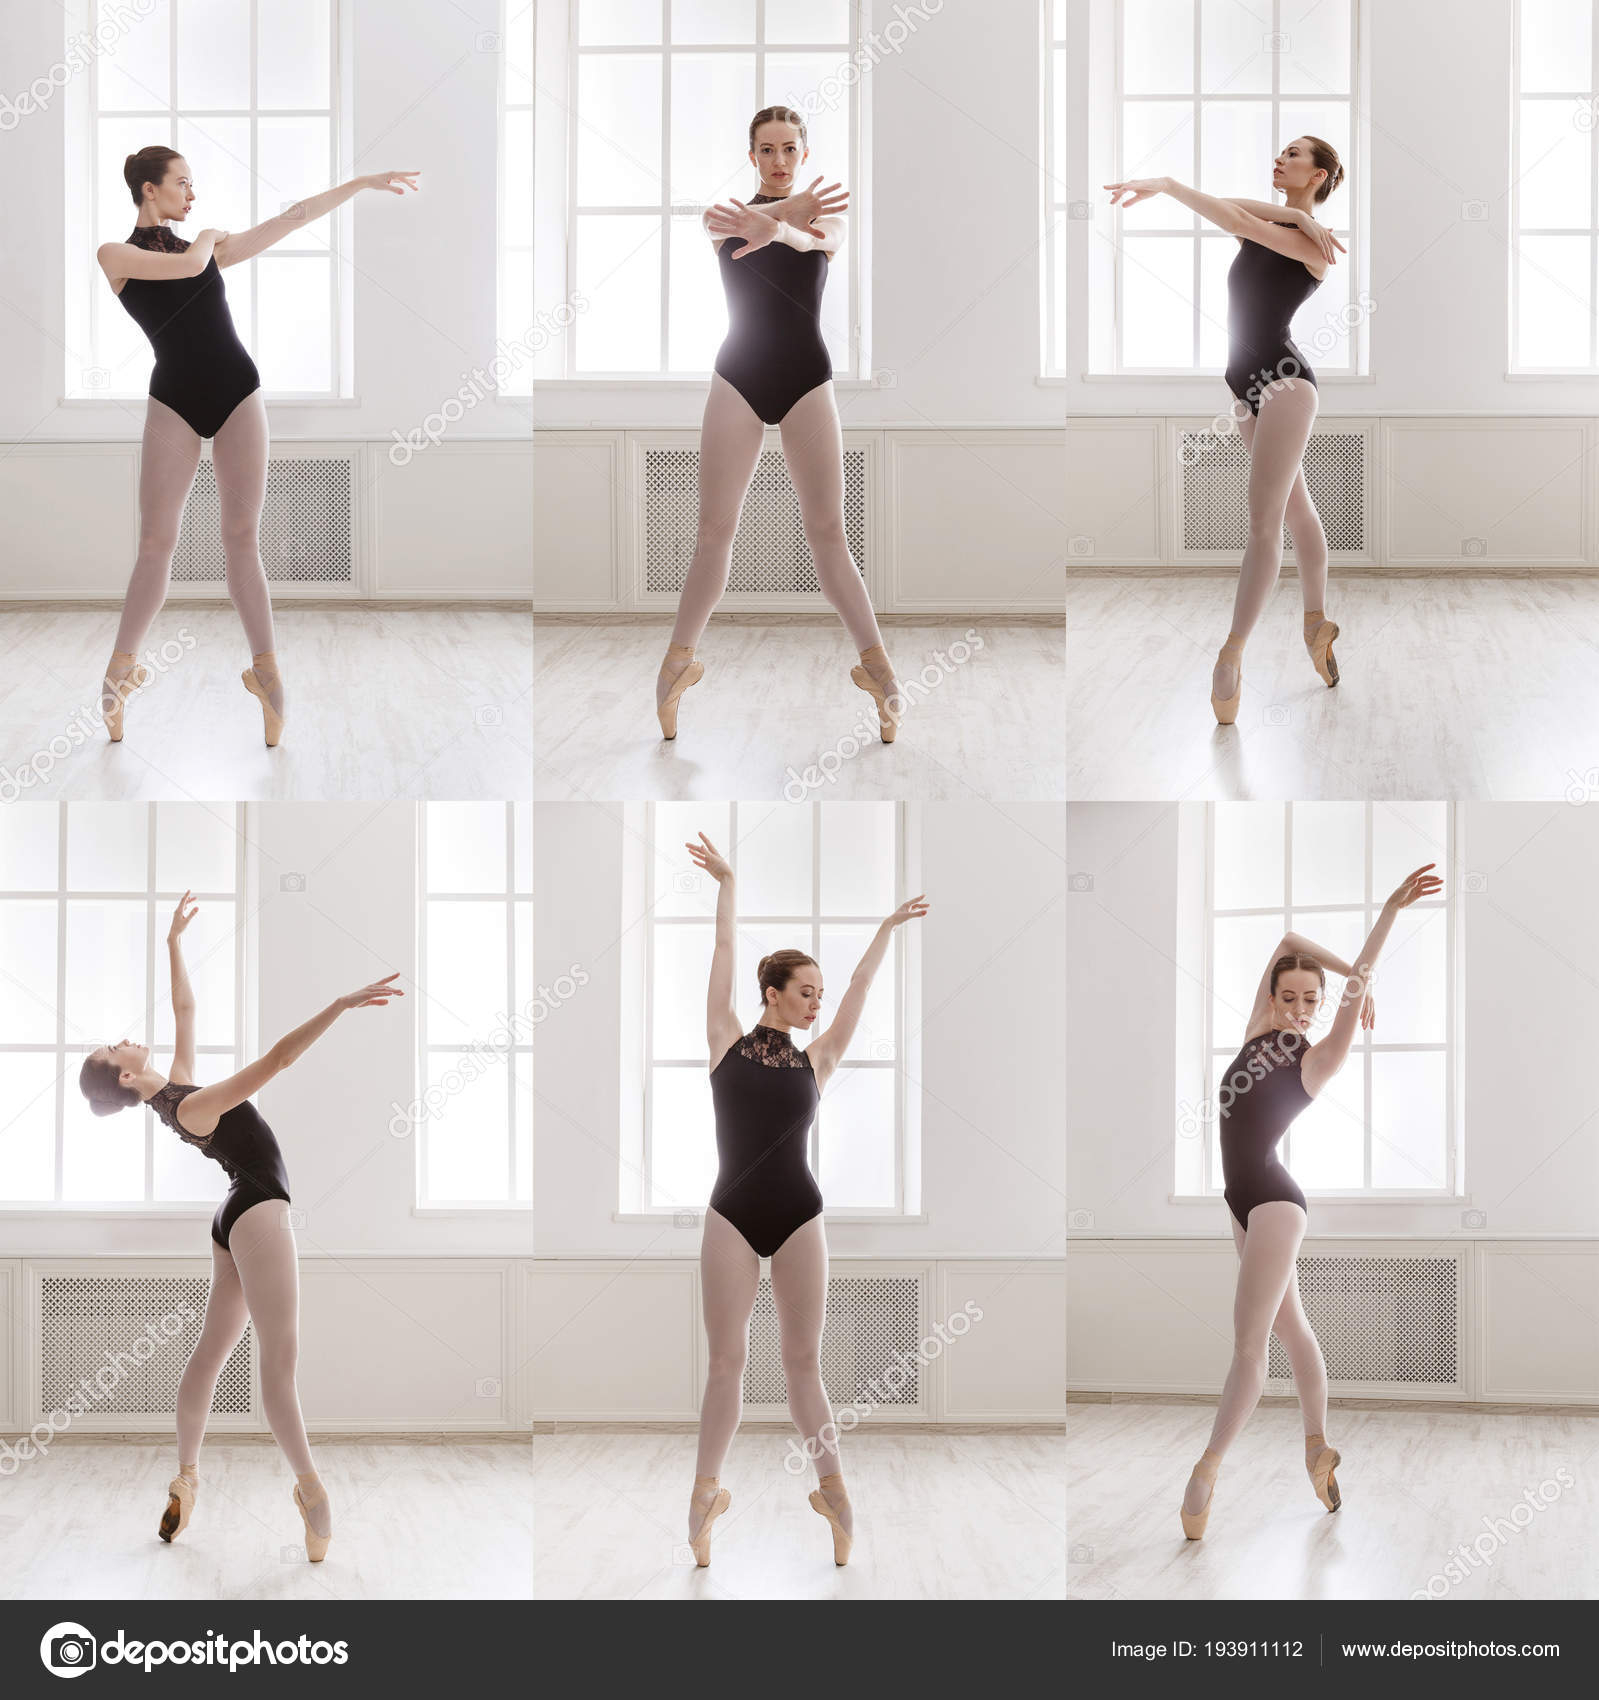 Collage Of Young Ballerina Standing In Ballet Poses Stock Photo C Milkos 193911112